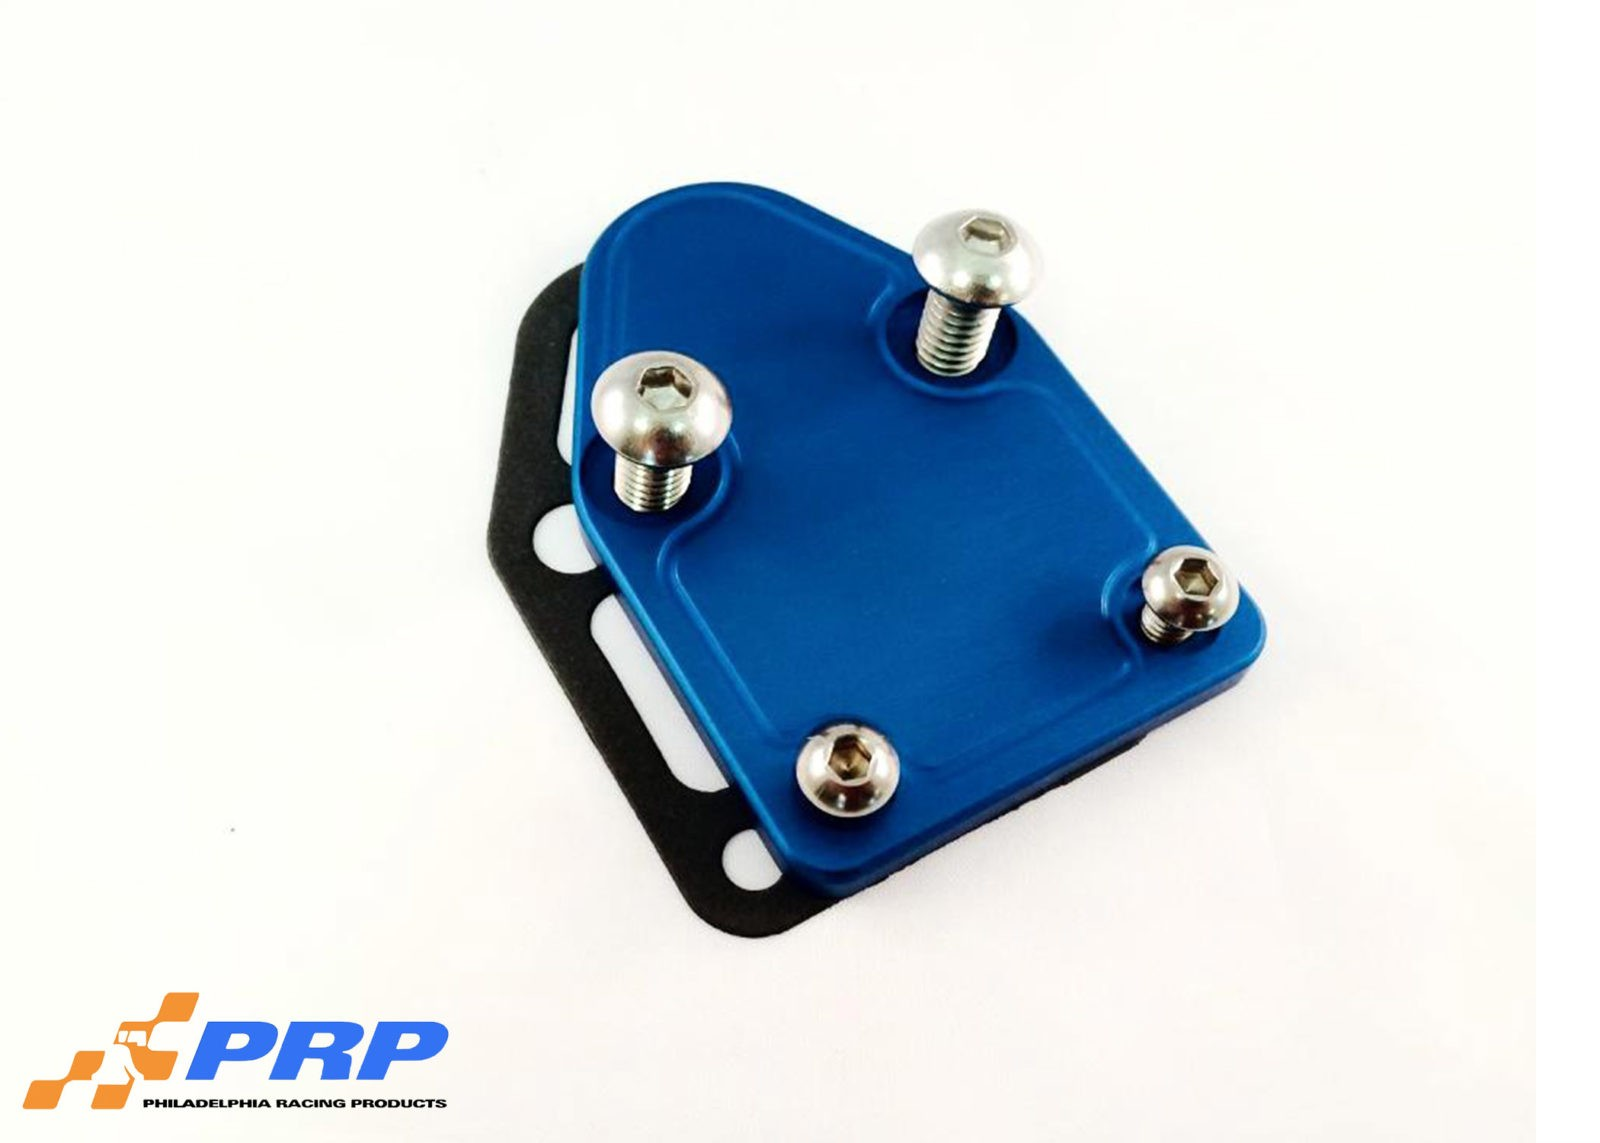 Blue SBC Fuel Pump Block-off Plate made by PRP Racing Products